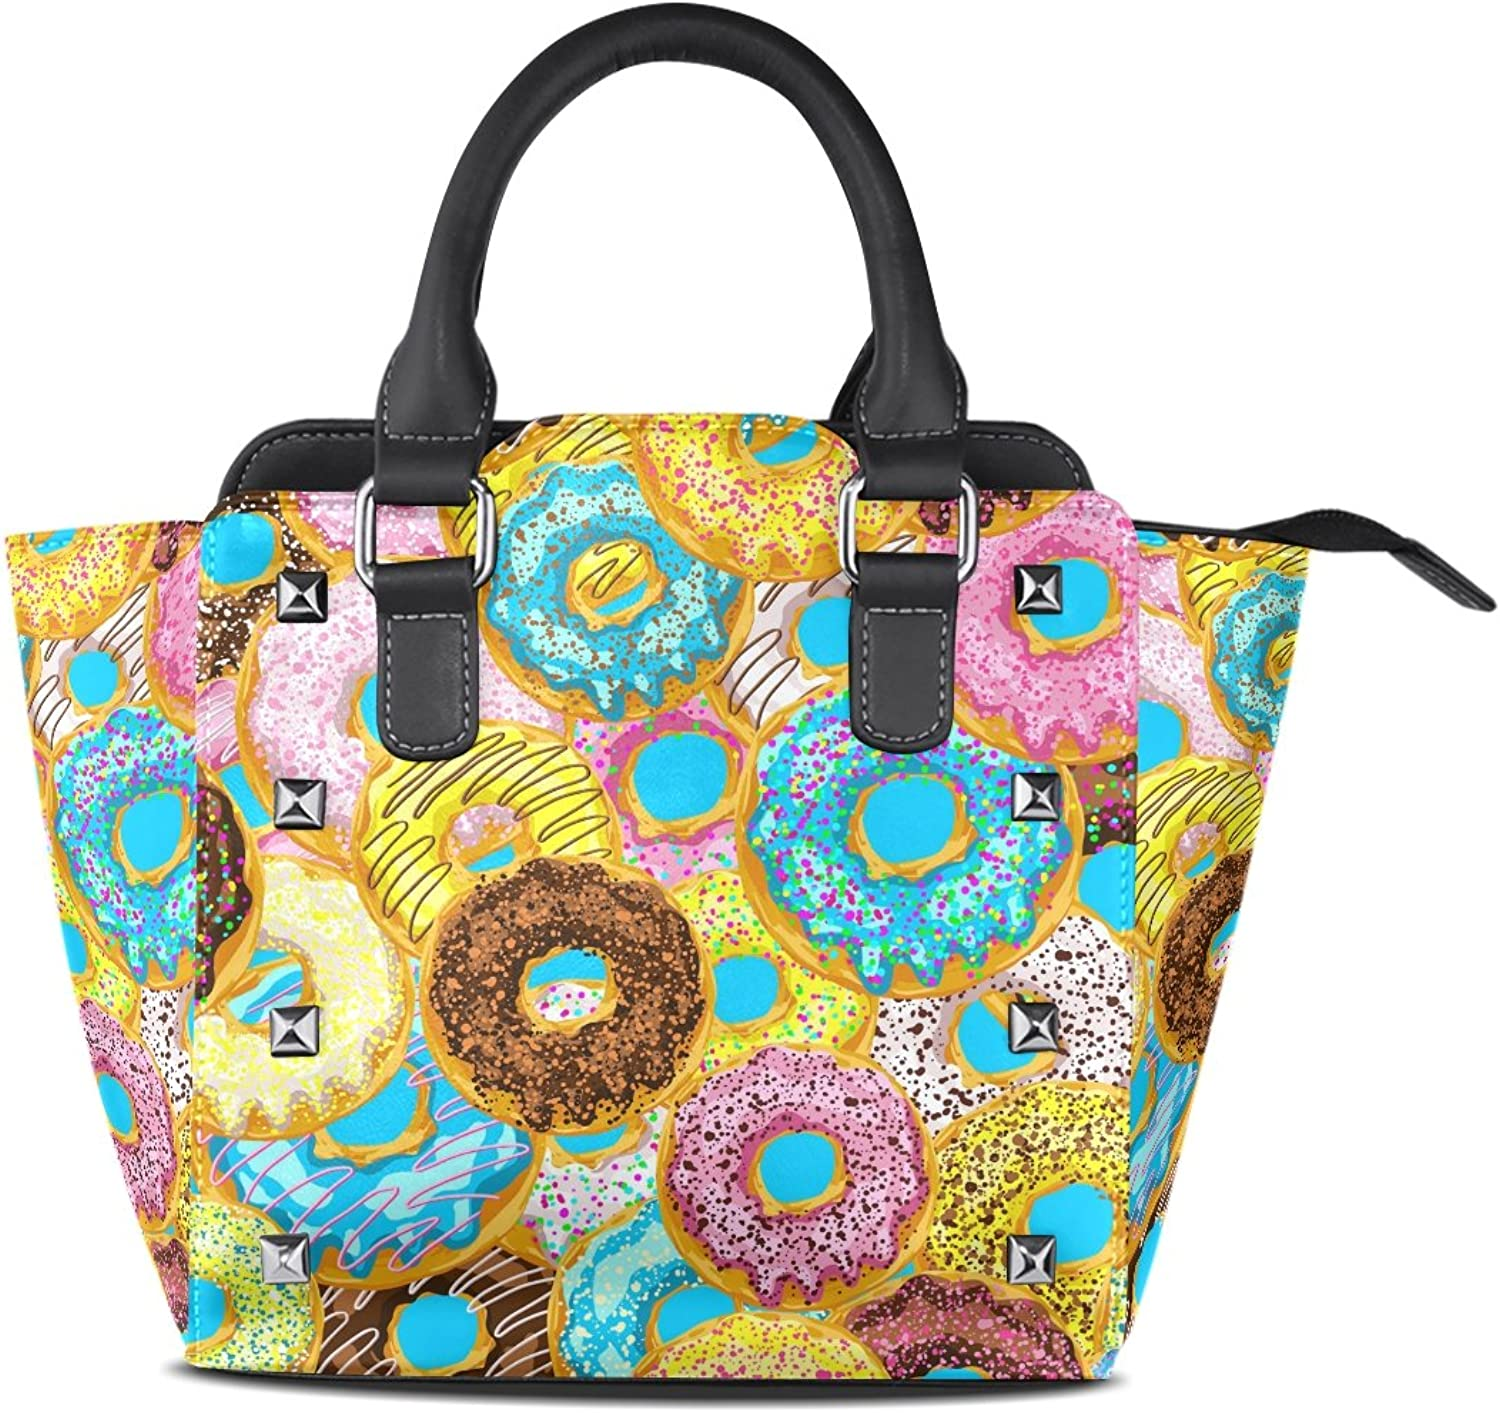 My Little Nest Women's Top Handle Satchel Handbag colorful Donuts with Sprinkles Ladies PU Leather Shoulder Bag Crossbody Bag